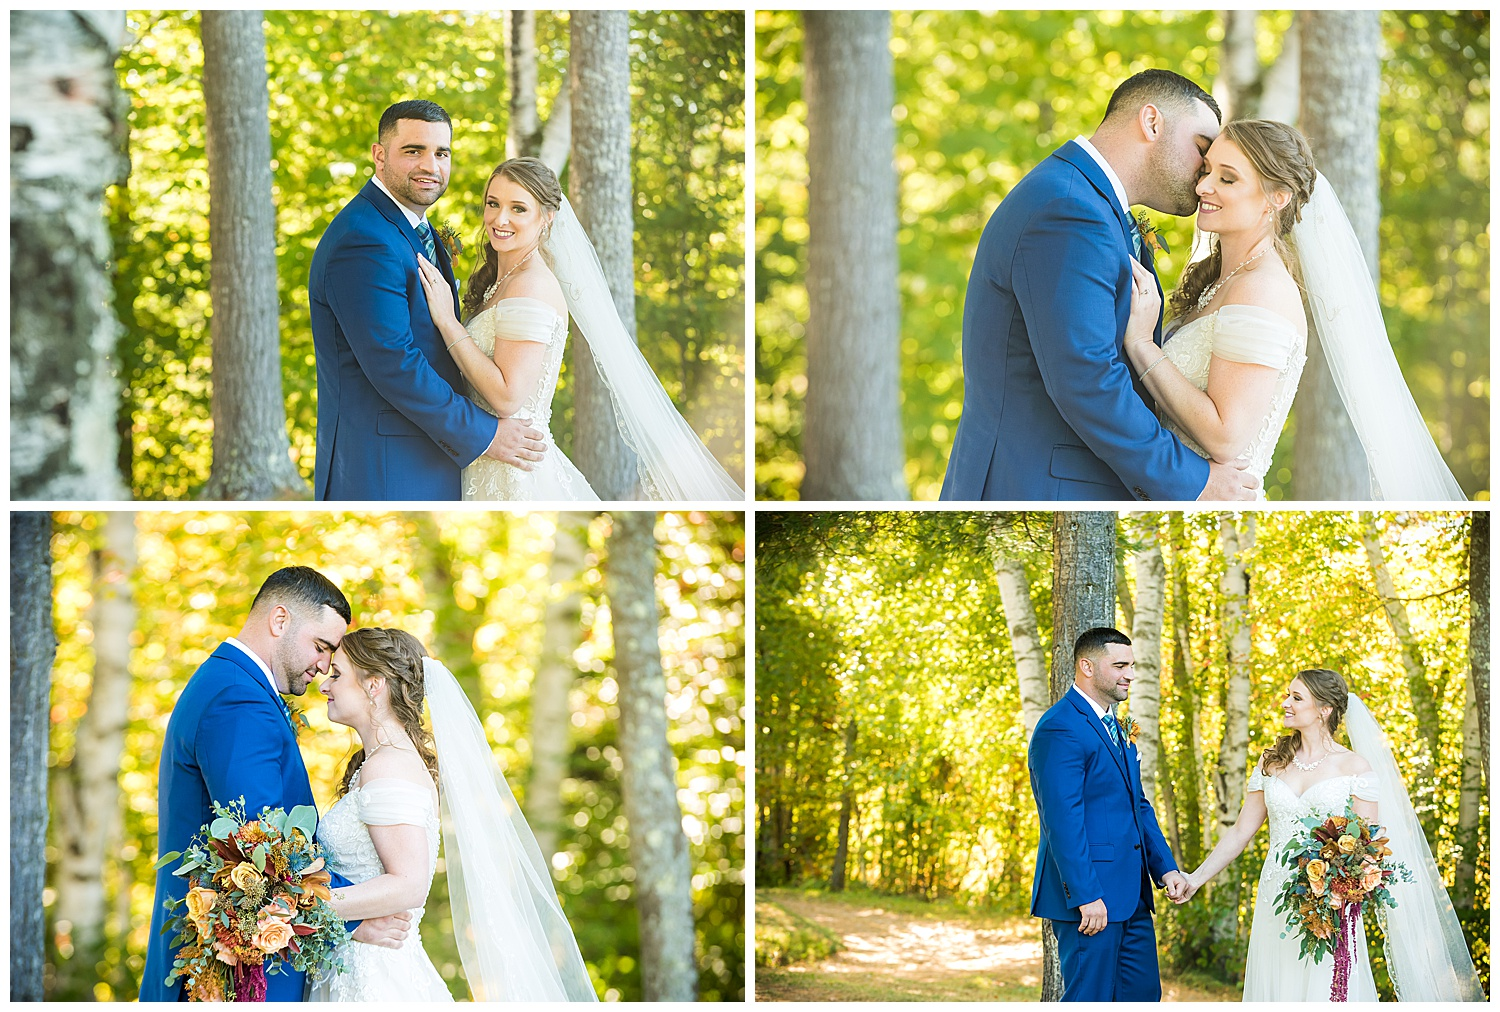 Owl's Nest White Mountain Wedding - Bride & Groom Portraits